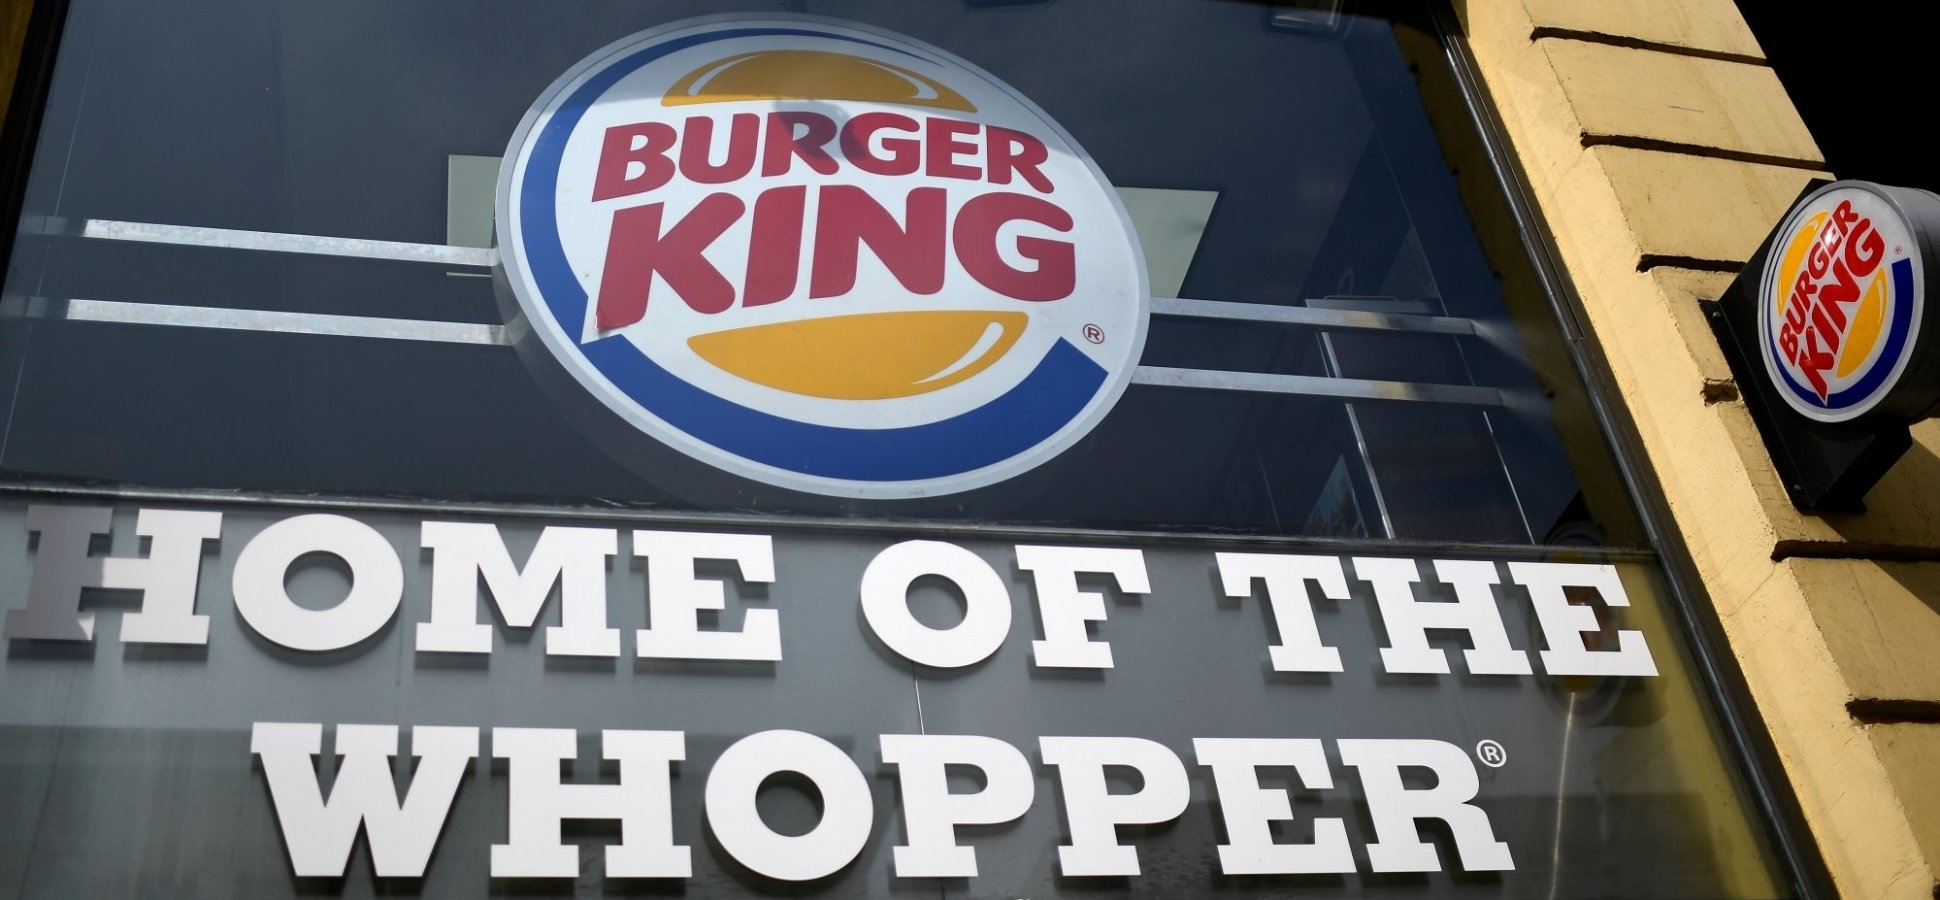 Burger King Tries to Sell a New Service By Insulting Customers. Here's Why It's Brilliant (and Dangerous)